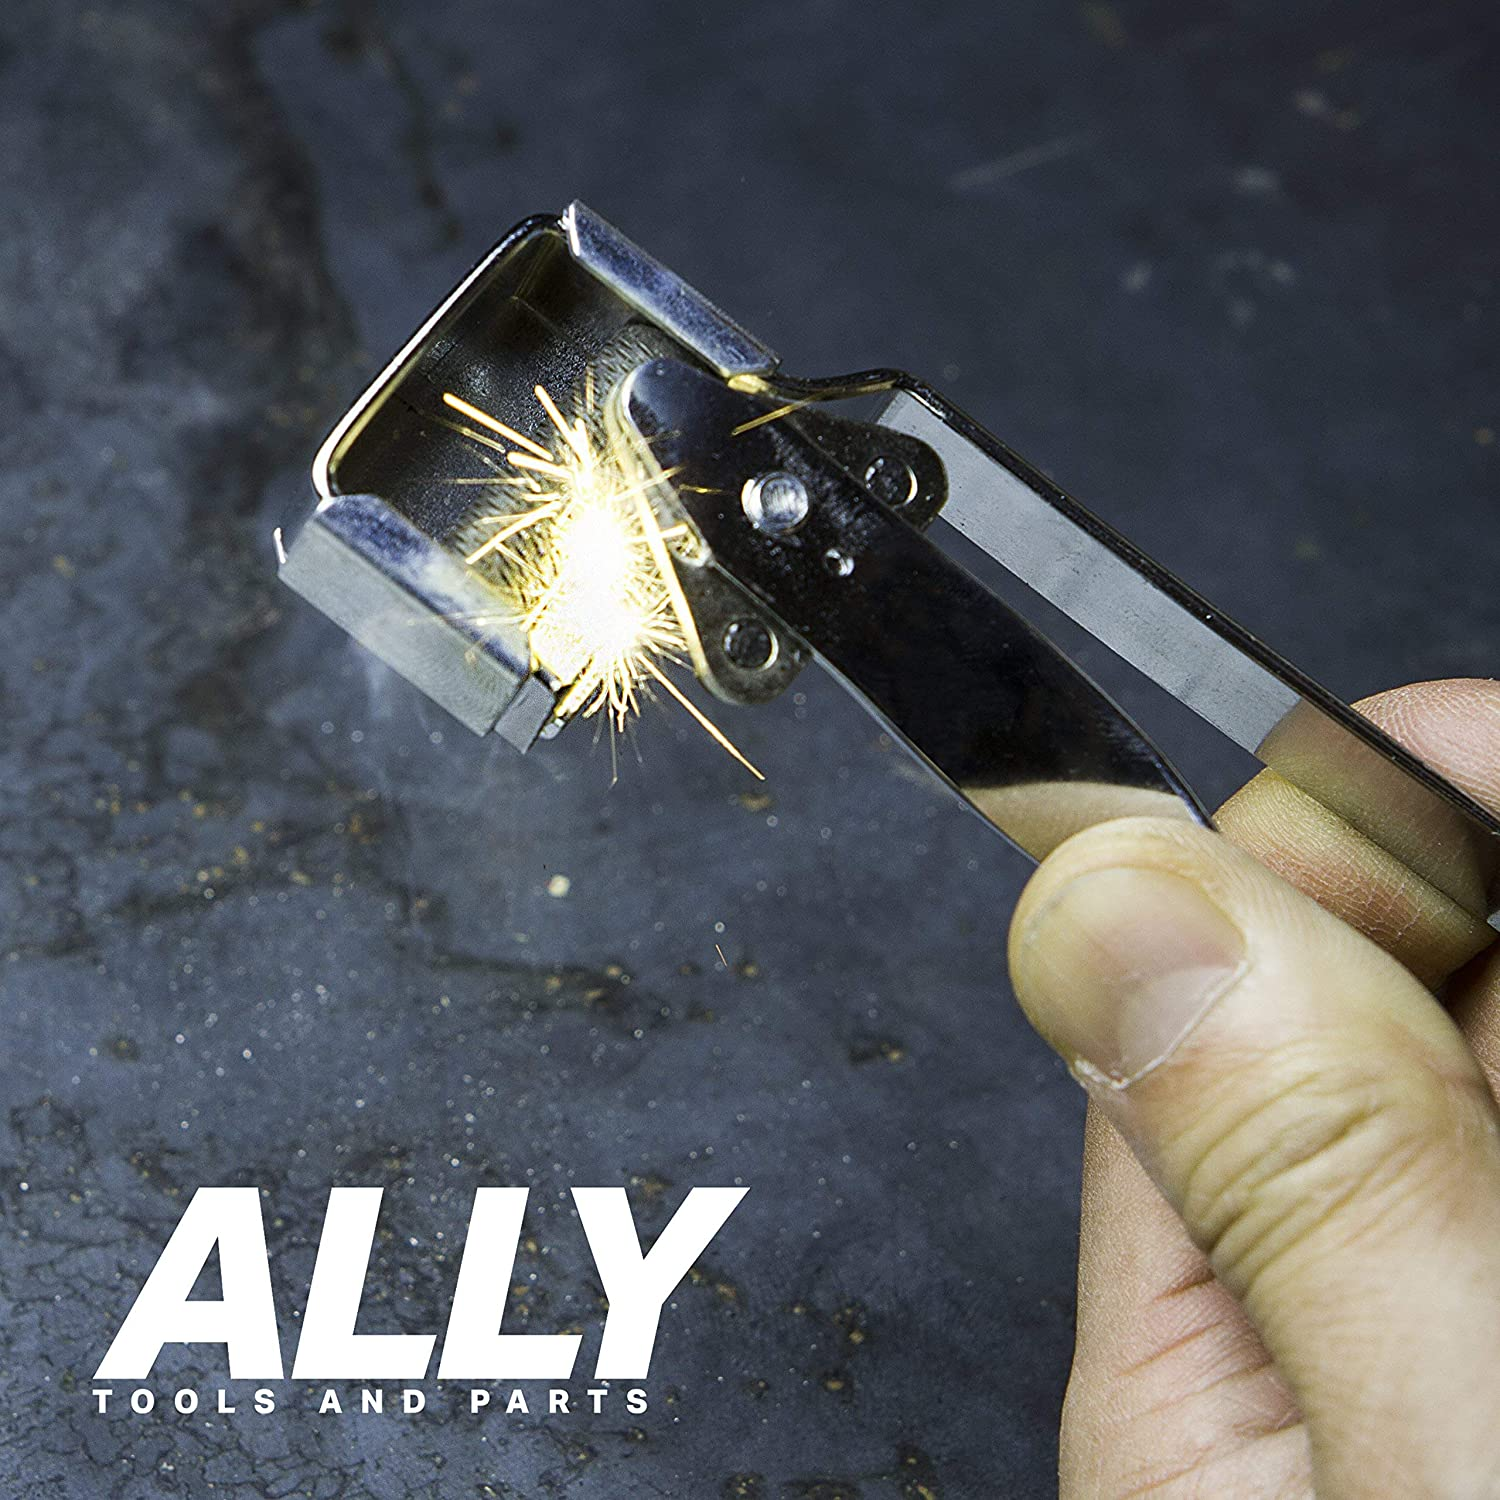 ALLY Tools Triple Flint Striker with 21 Rotatable Triple Flints and Kitchen Stoves Long Lasting Triple Flints Perfect For Lighting Welding Torches Bunsen Burners Camping Stoves